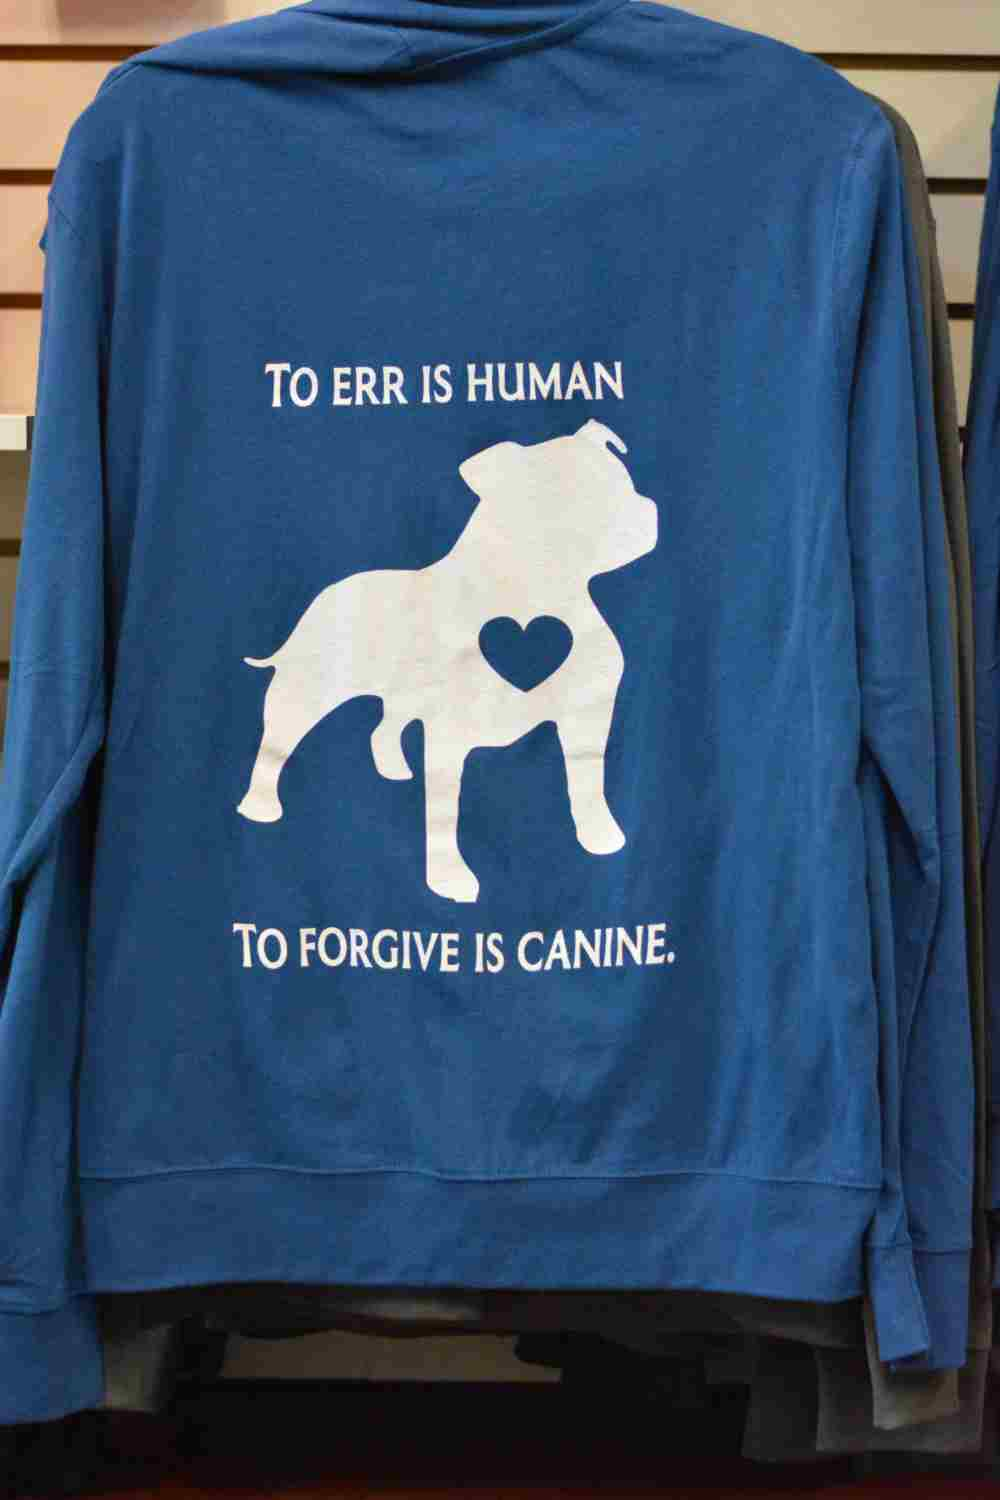 151005631d8b Full Zip Hooded Jacket - To err is human, to forgive is canine. (2 ...